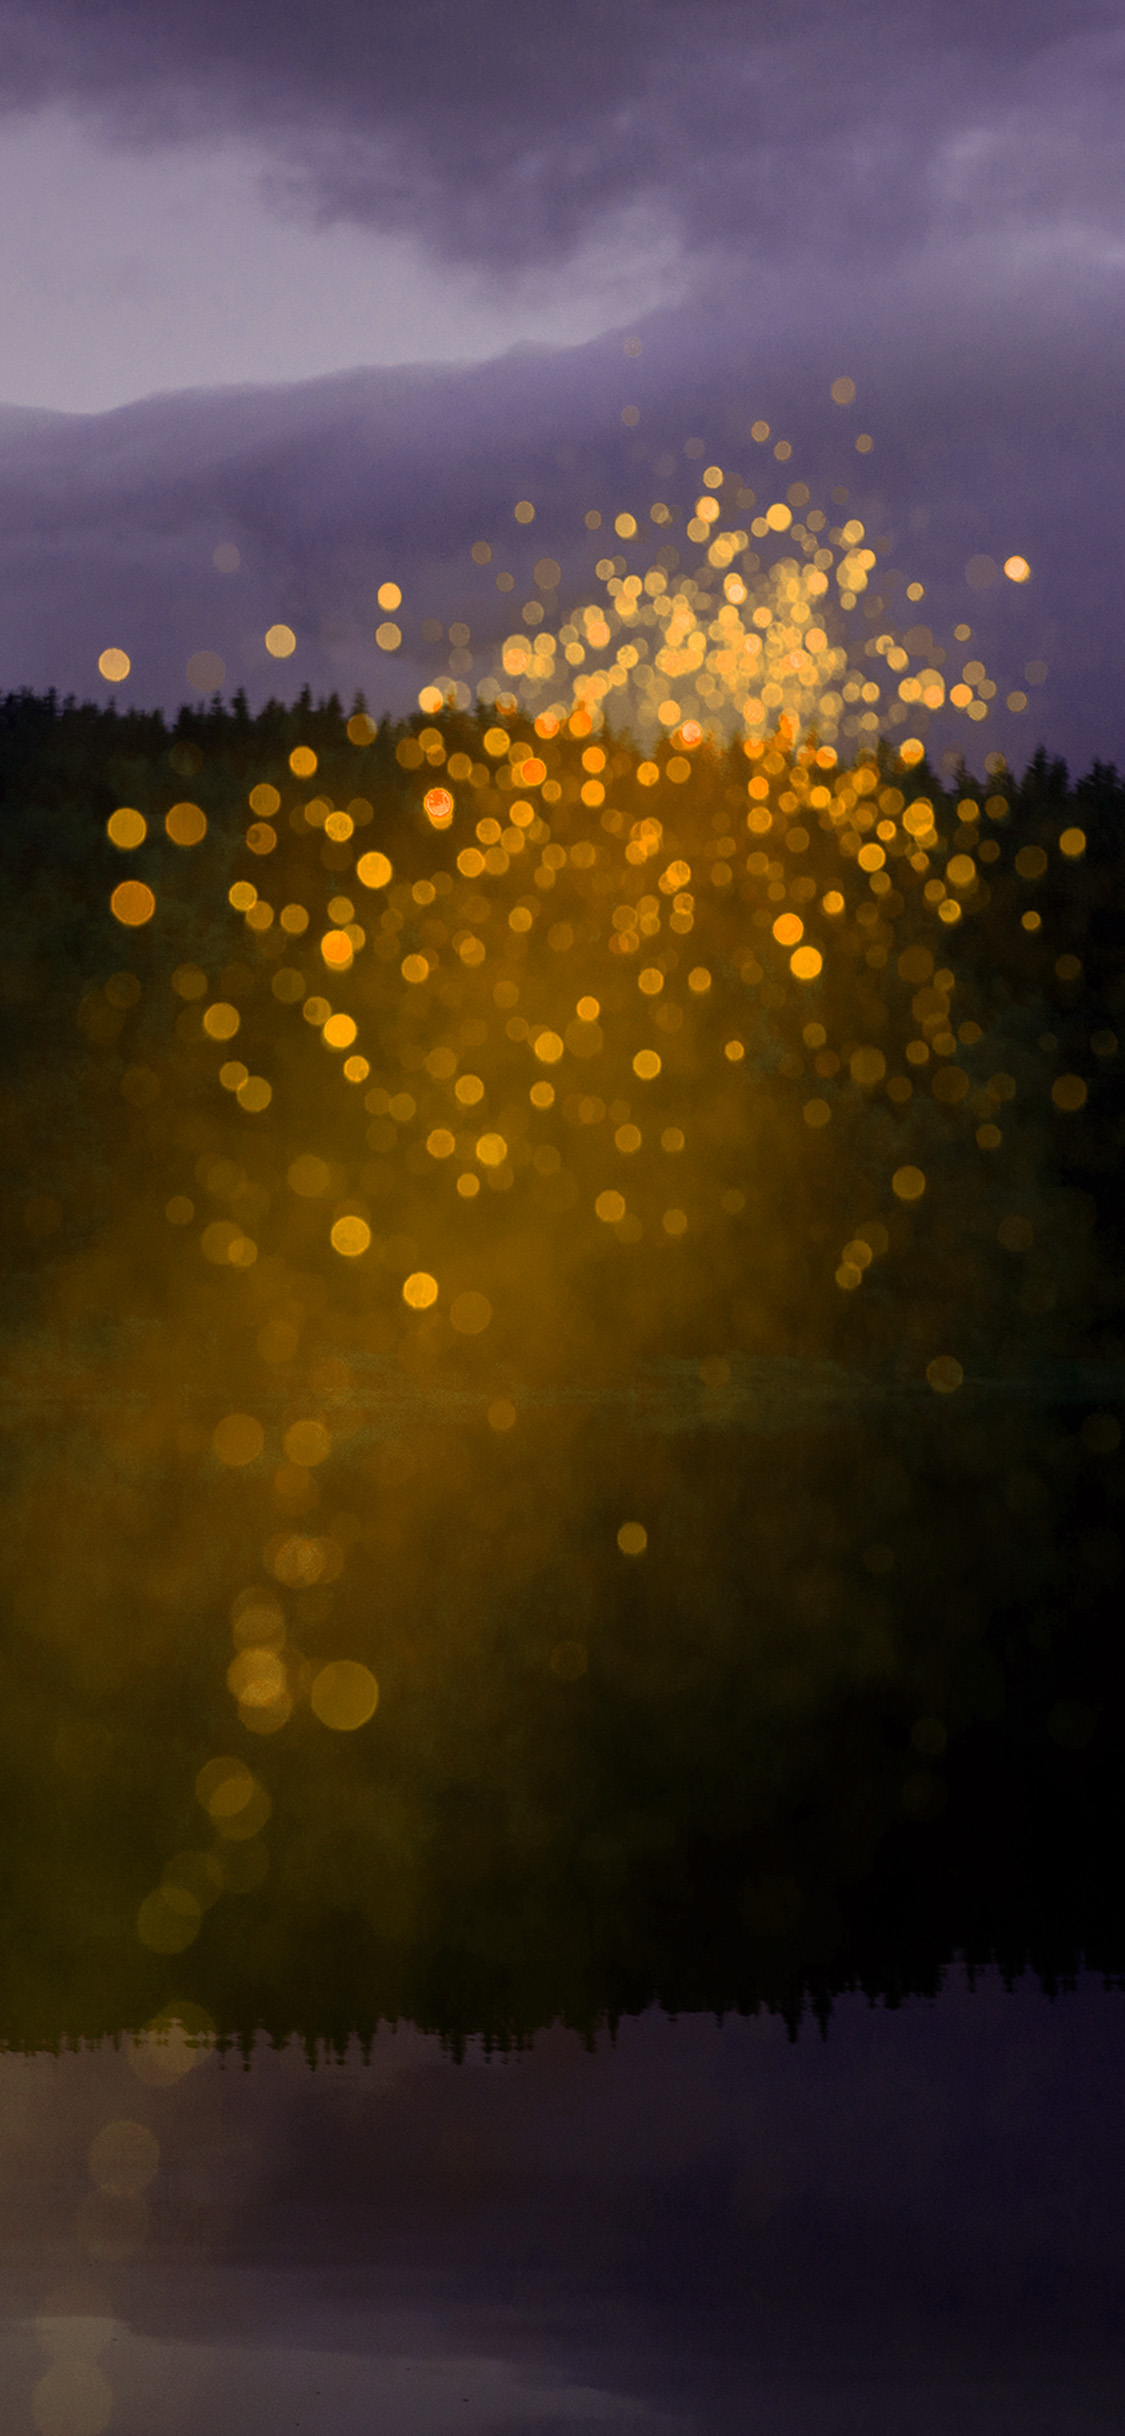 Iphone11papers Com Iphone11 Wallpaper Wb60 Mountain Yellow Light Bokeh Pattern Background